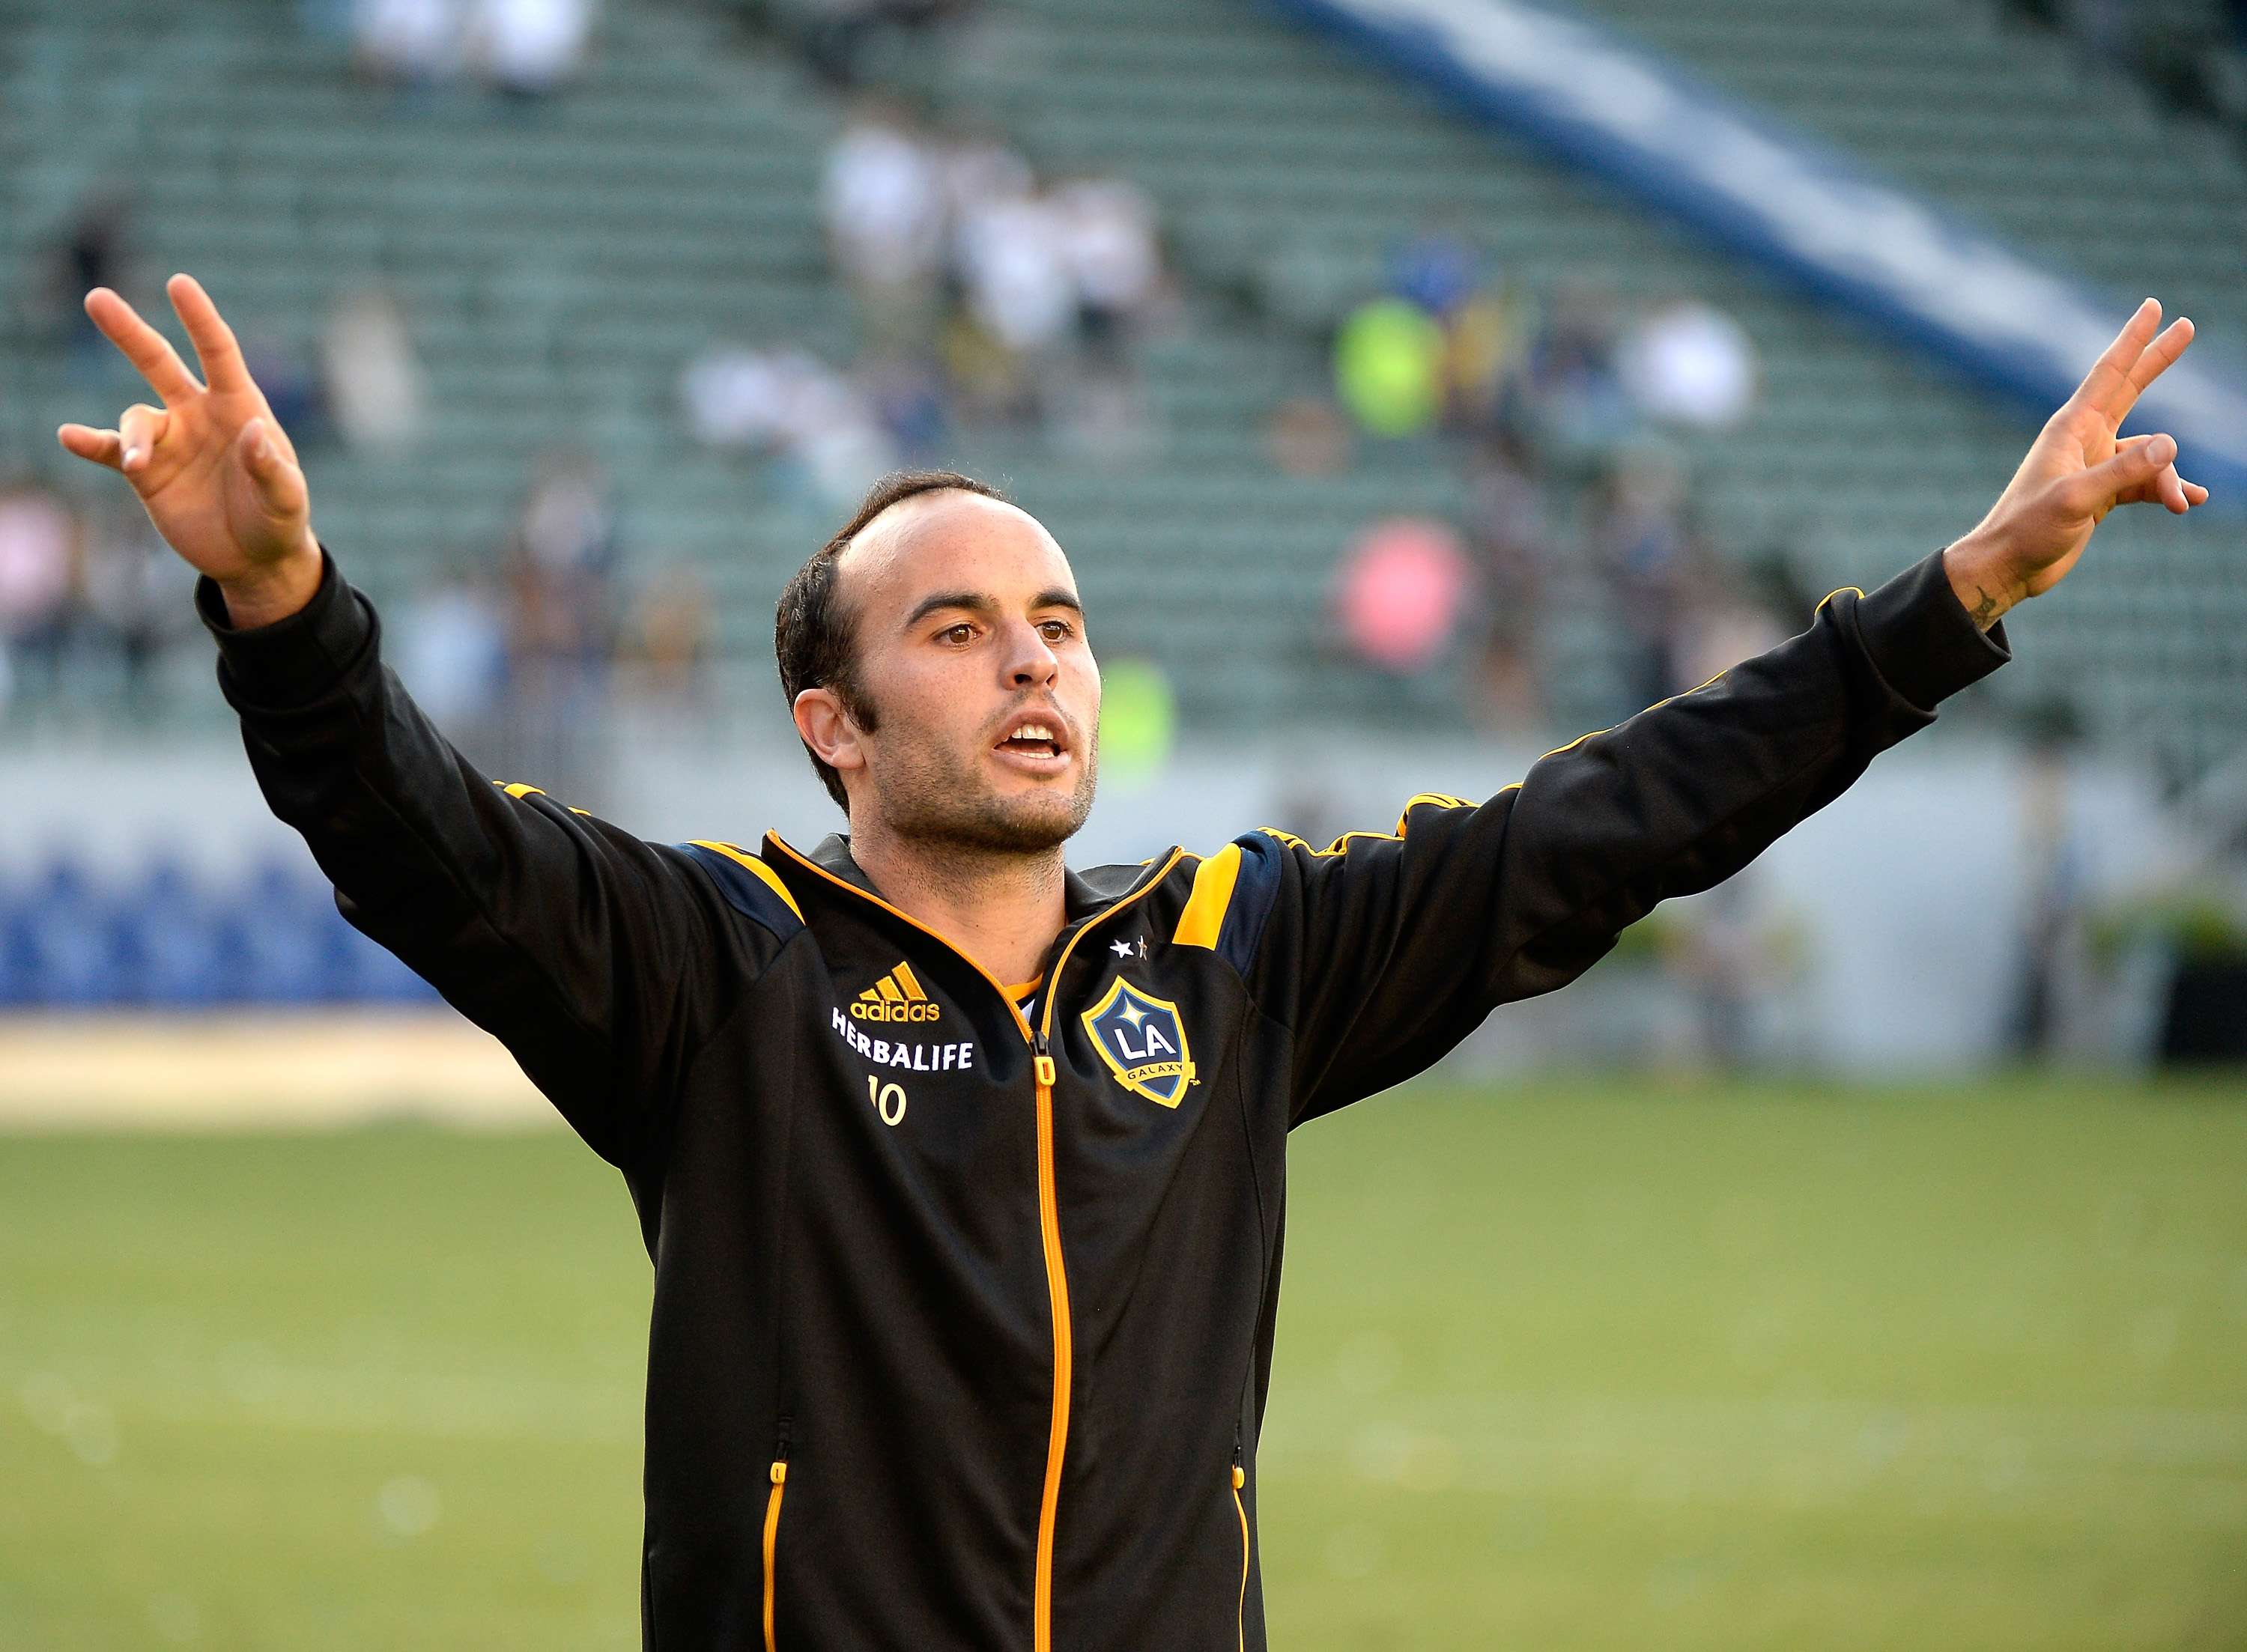 Landon Donovan will play farewell game against Ecuador